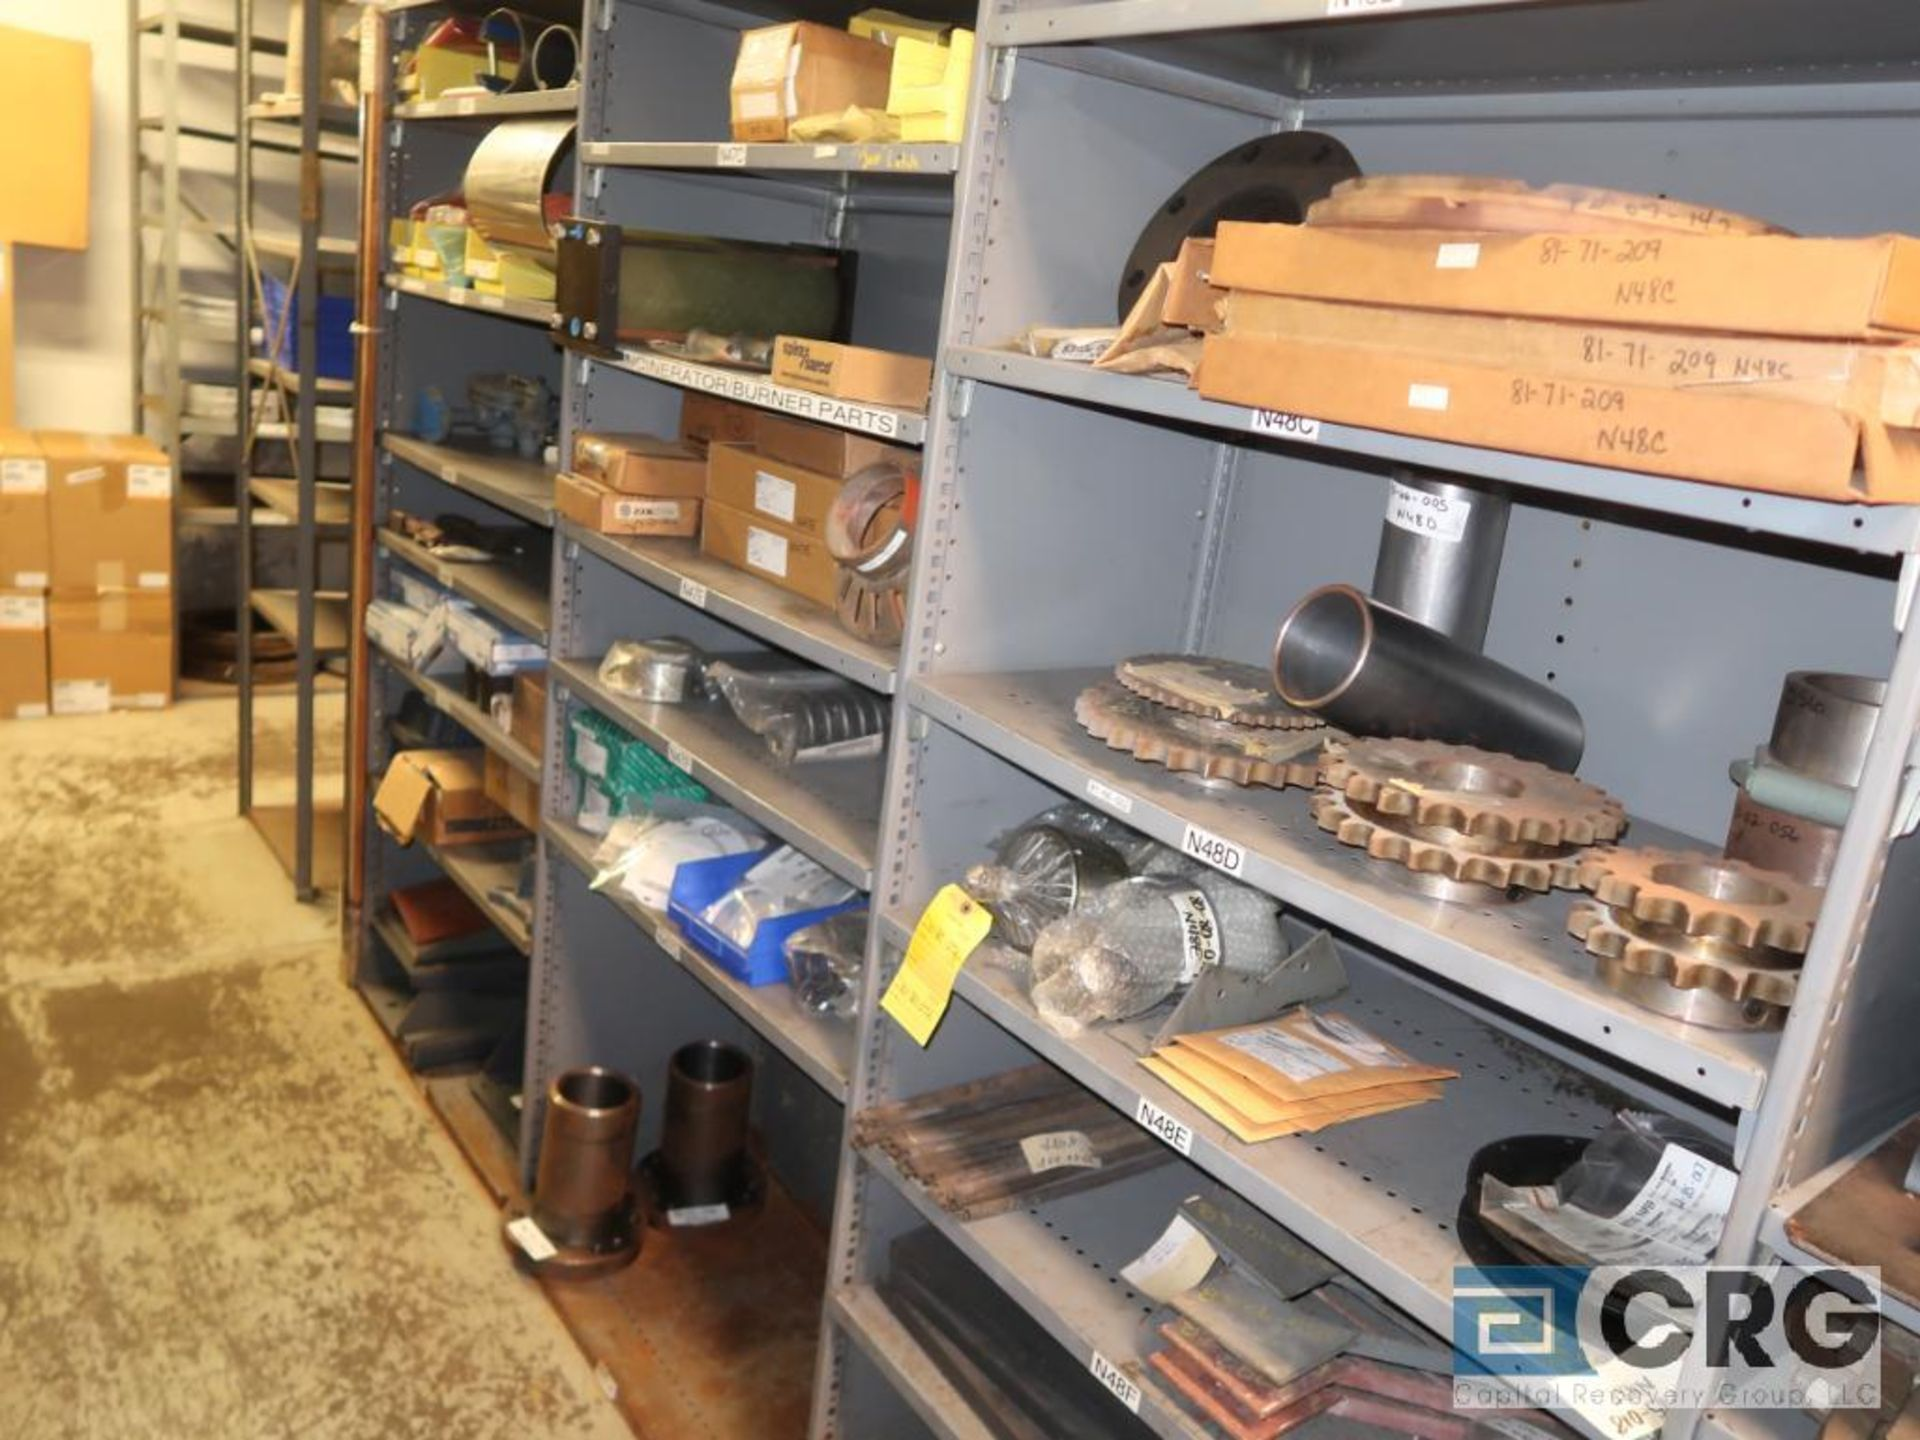 Lot of (35) sections with assorted parts including gaskets, fittings, shaft pins, gears, and - Image 4 of 17